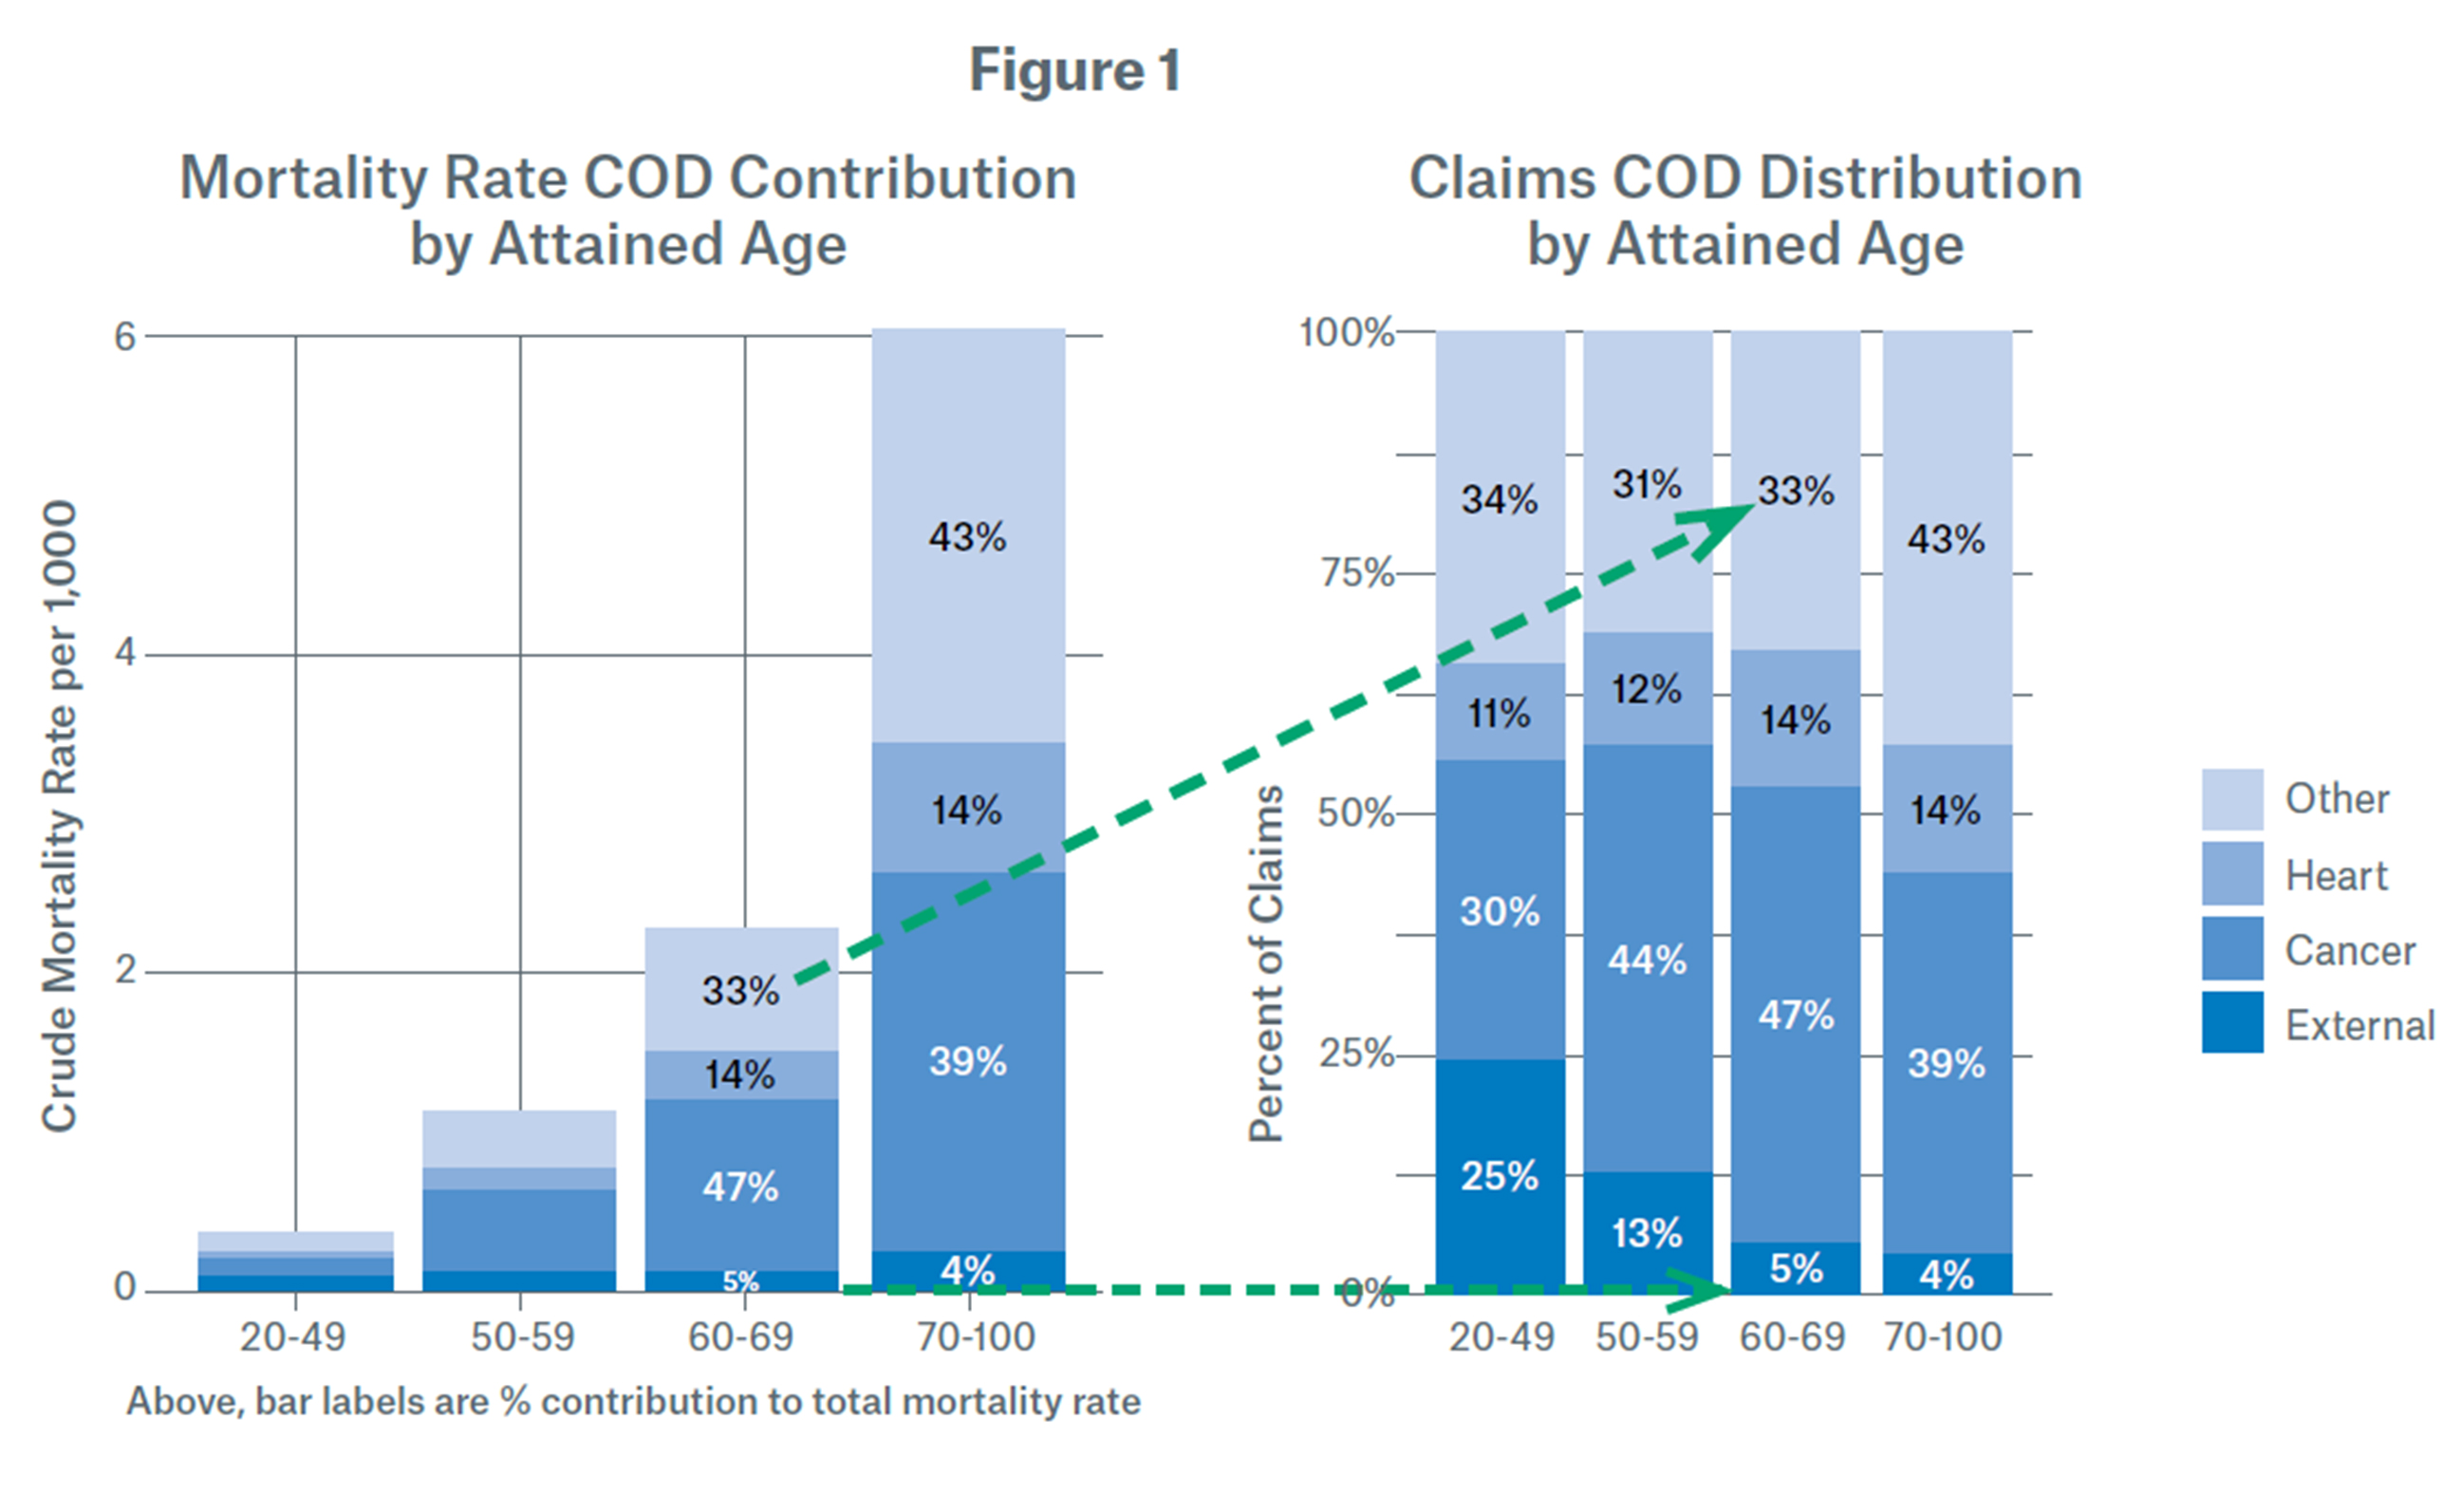 Mortality Rate COD Contribution by Attained Age